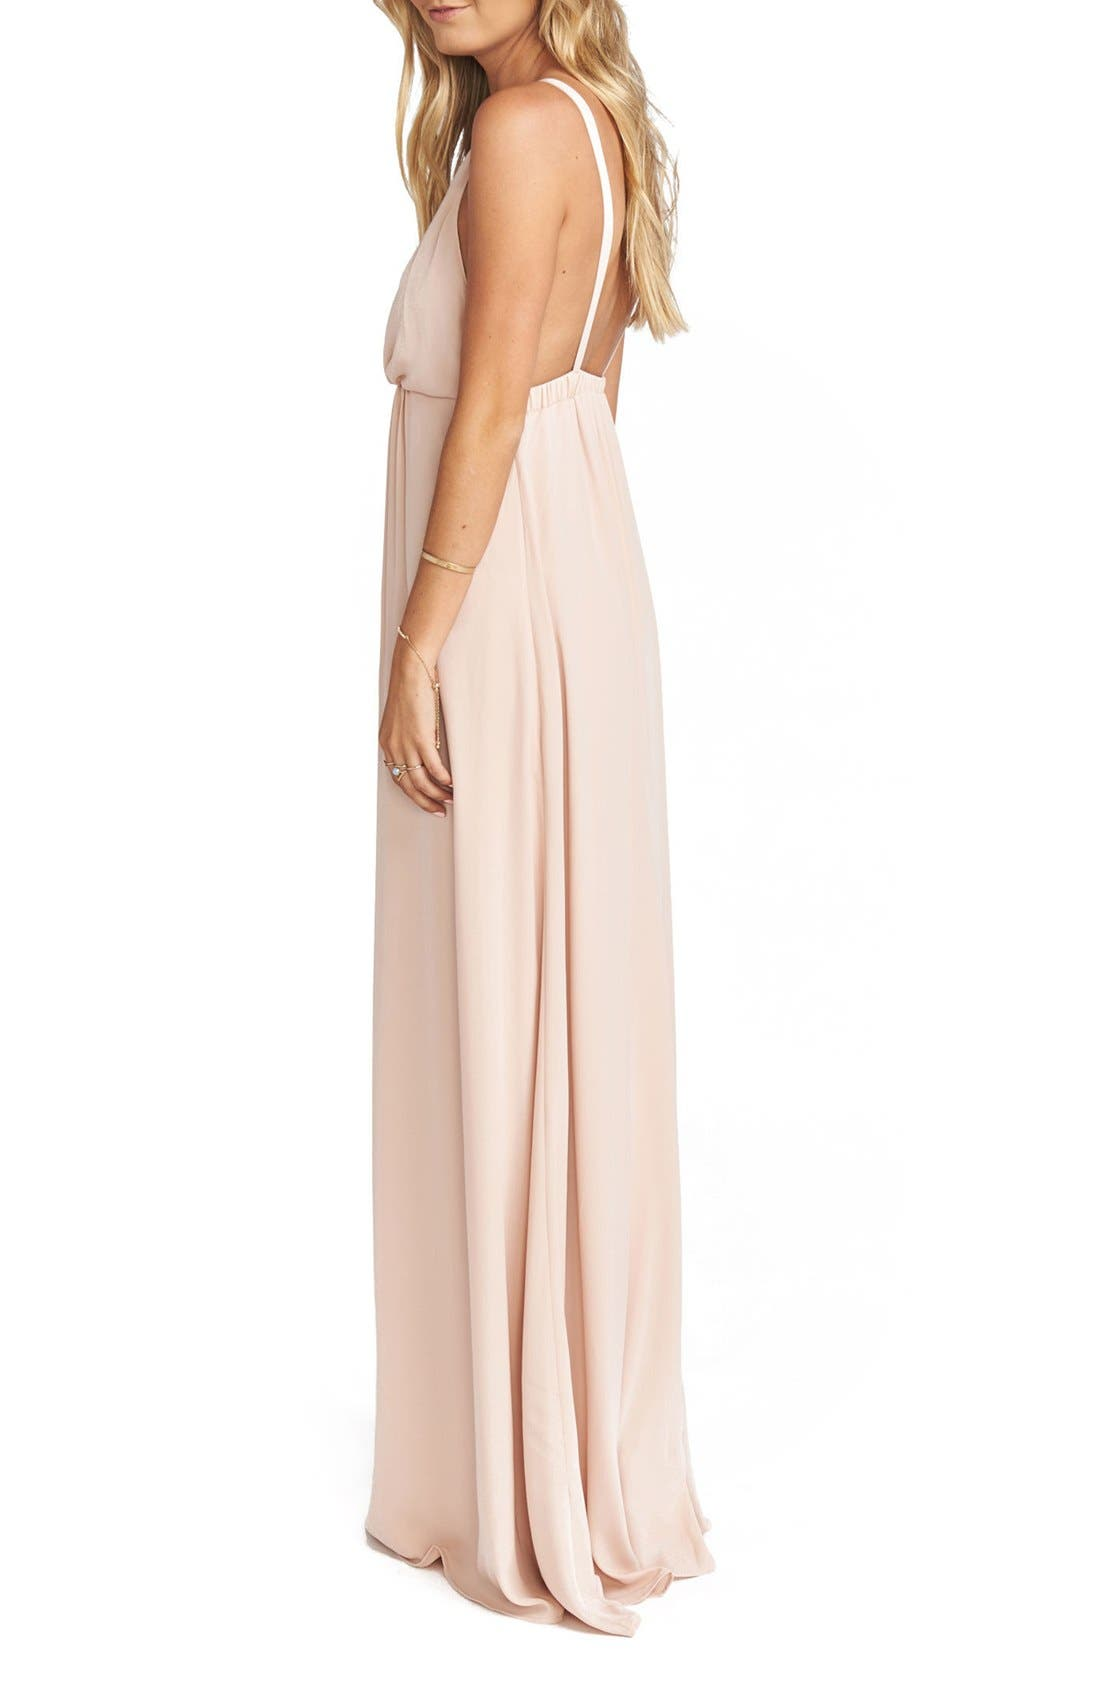 Amanda Open Back Blouson Gown,                             Alternate thumbnail 18, color,